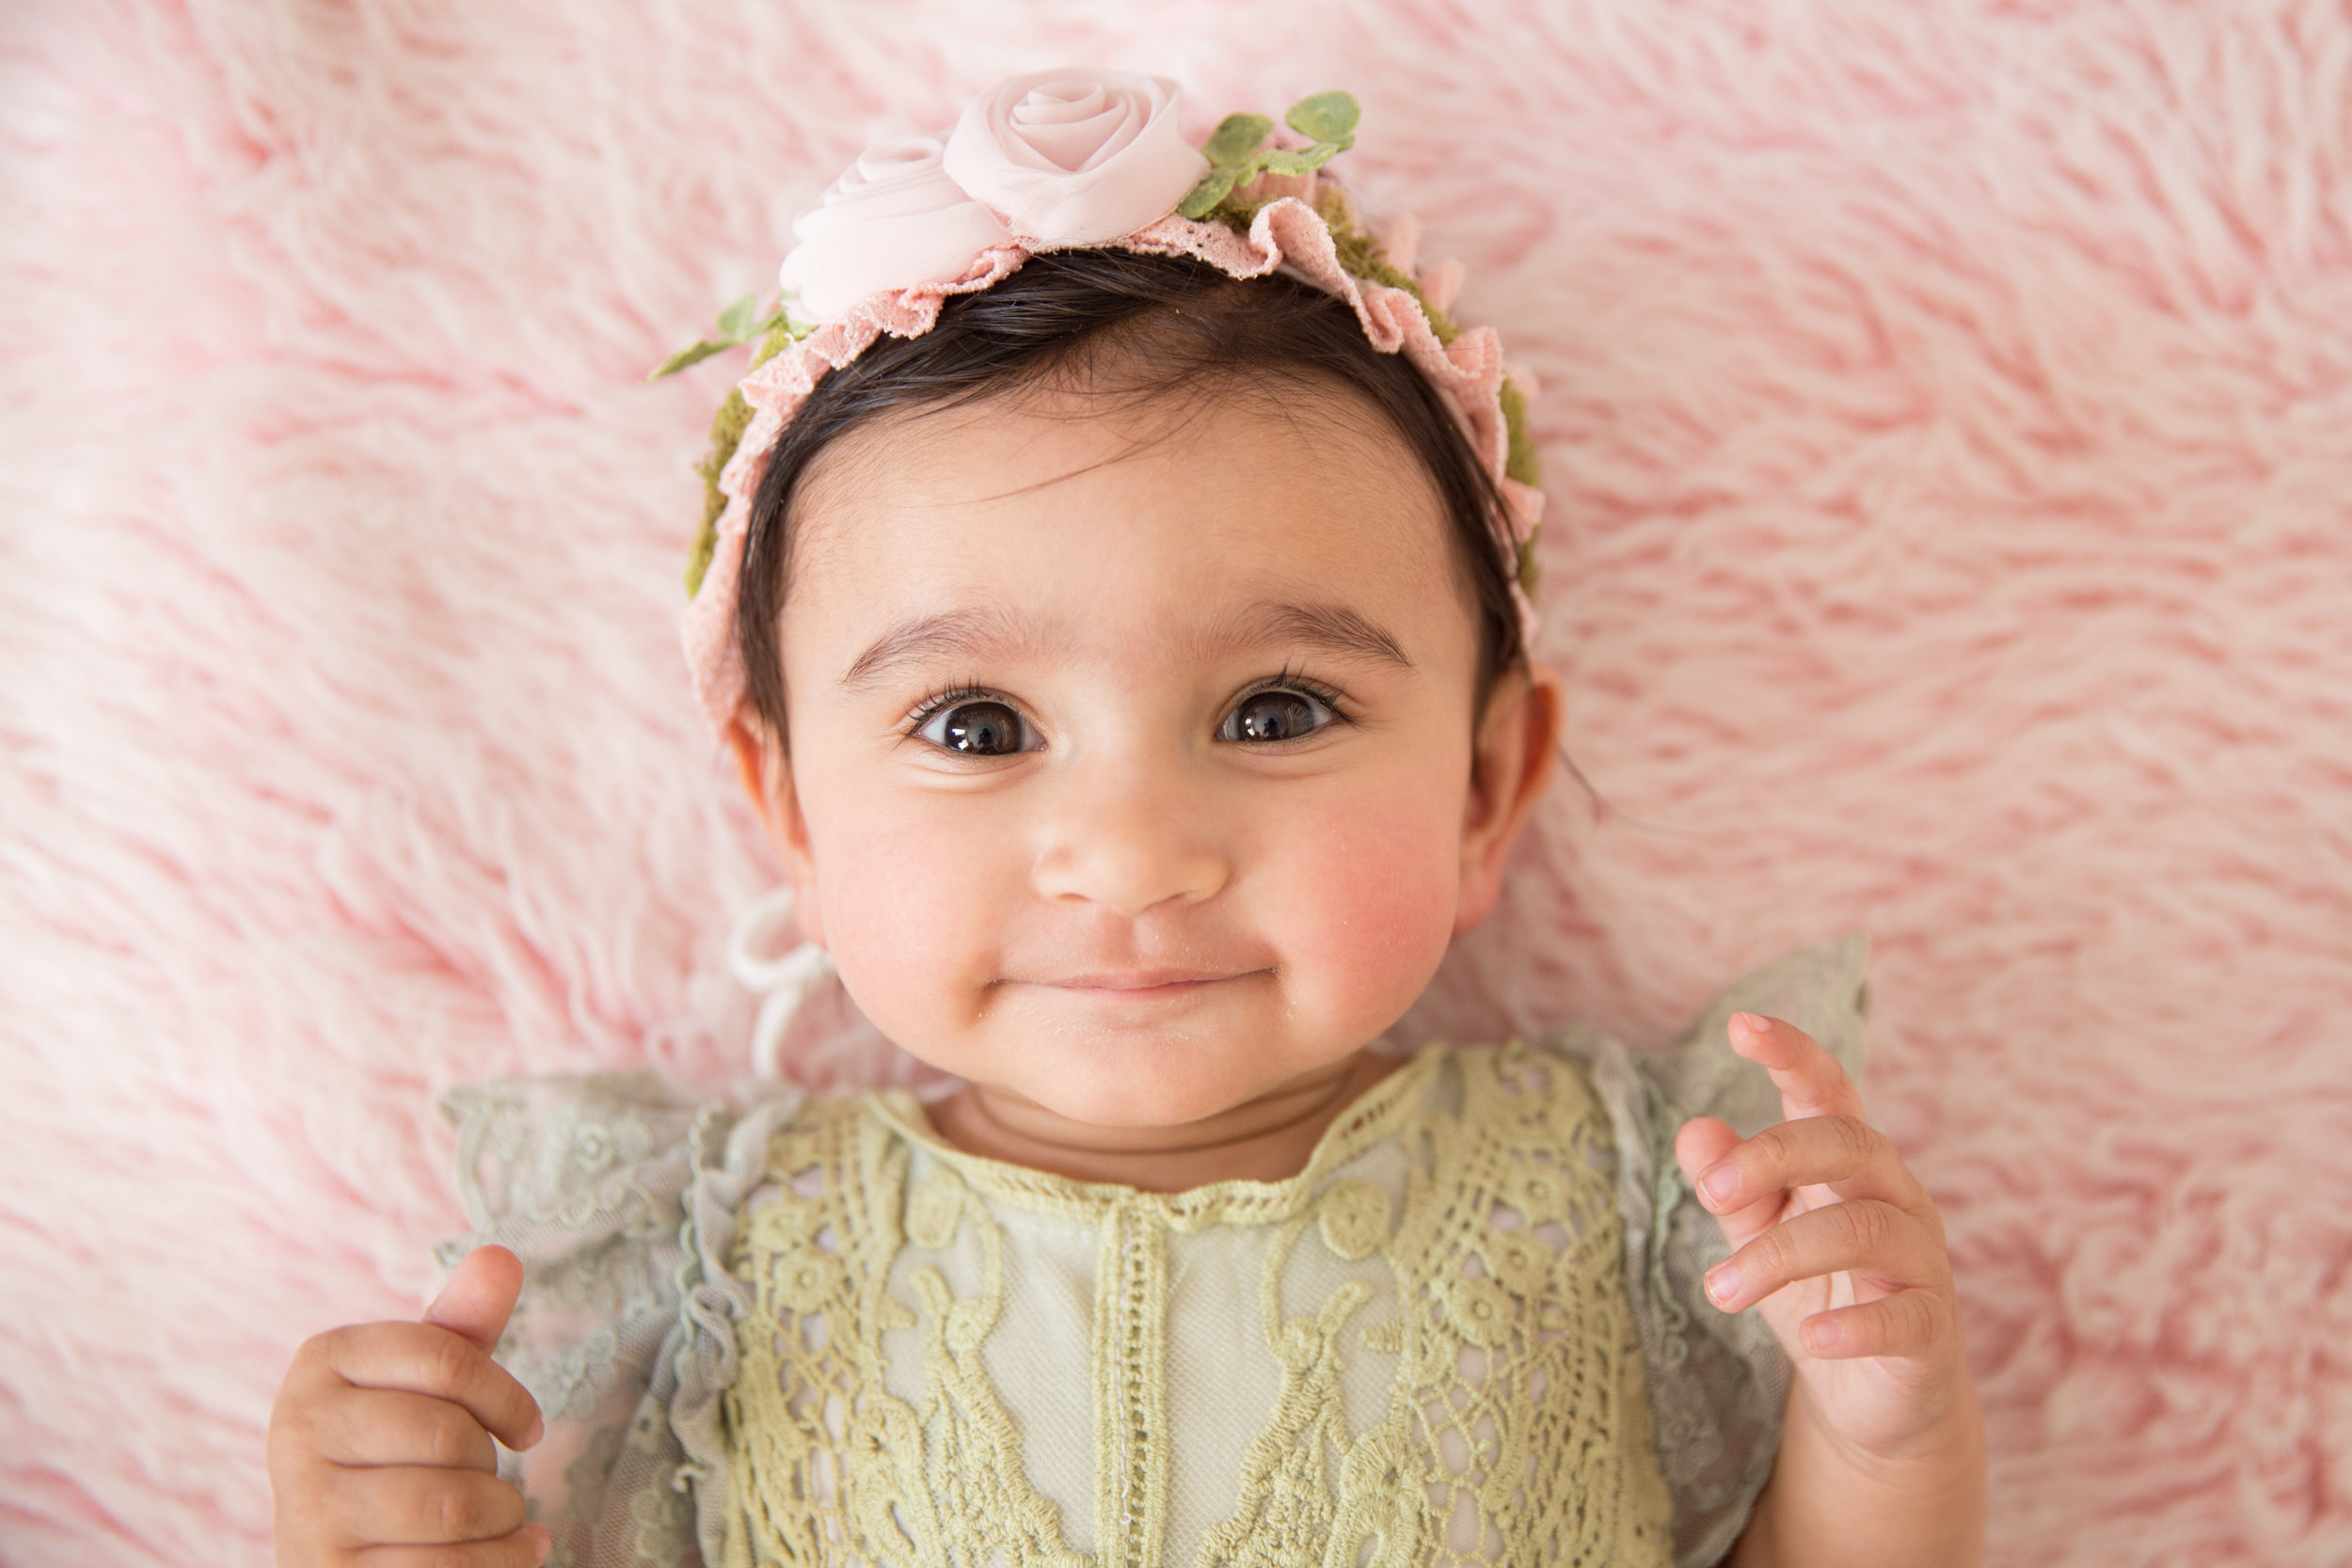 Baby girl during her baby milestone session wearing cute spring outfit and smiling for a Calgary baby photographer